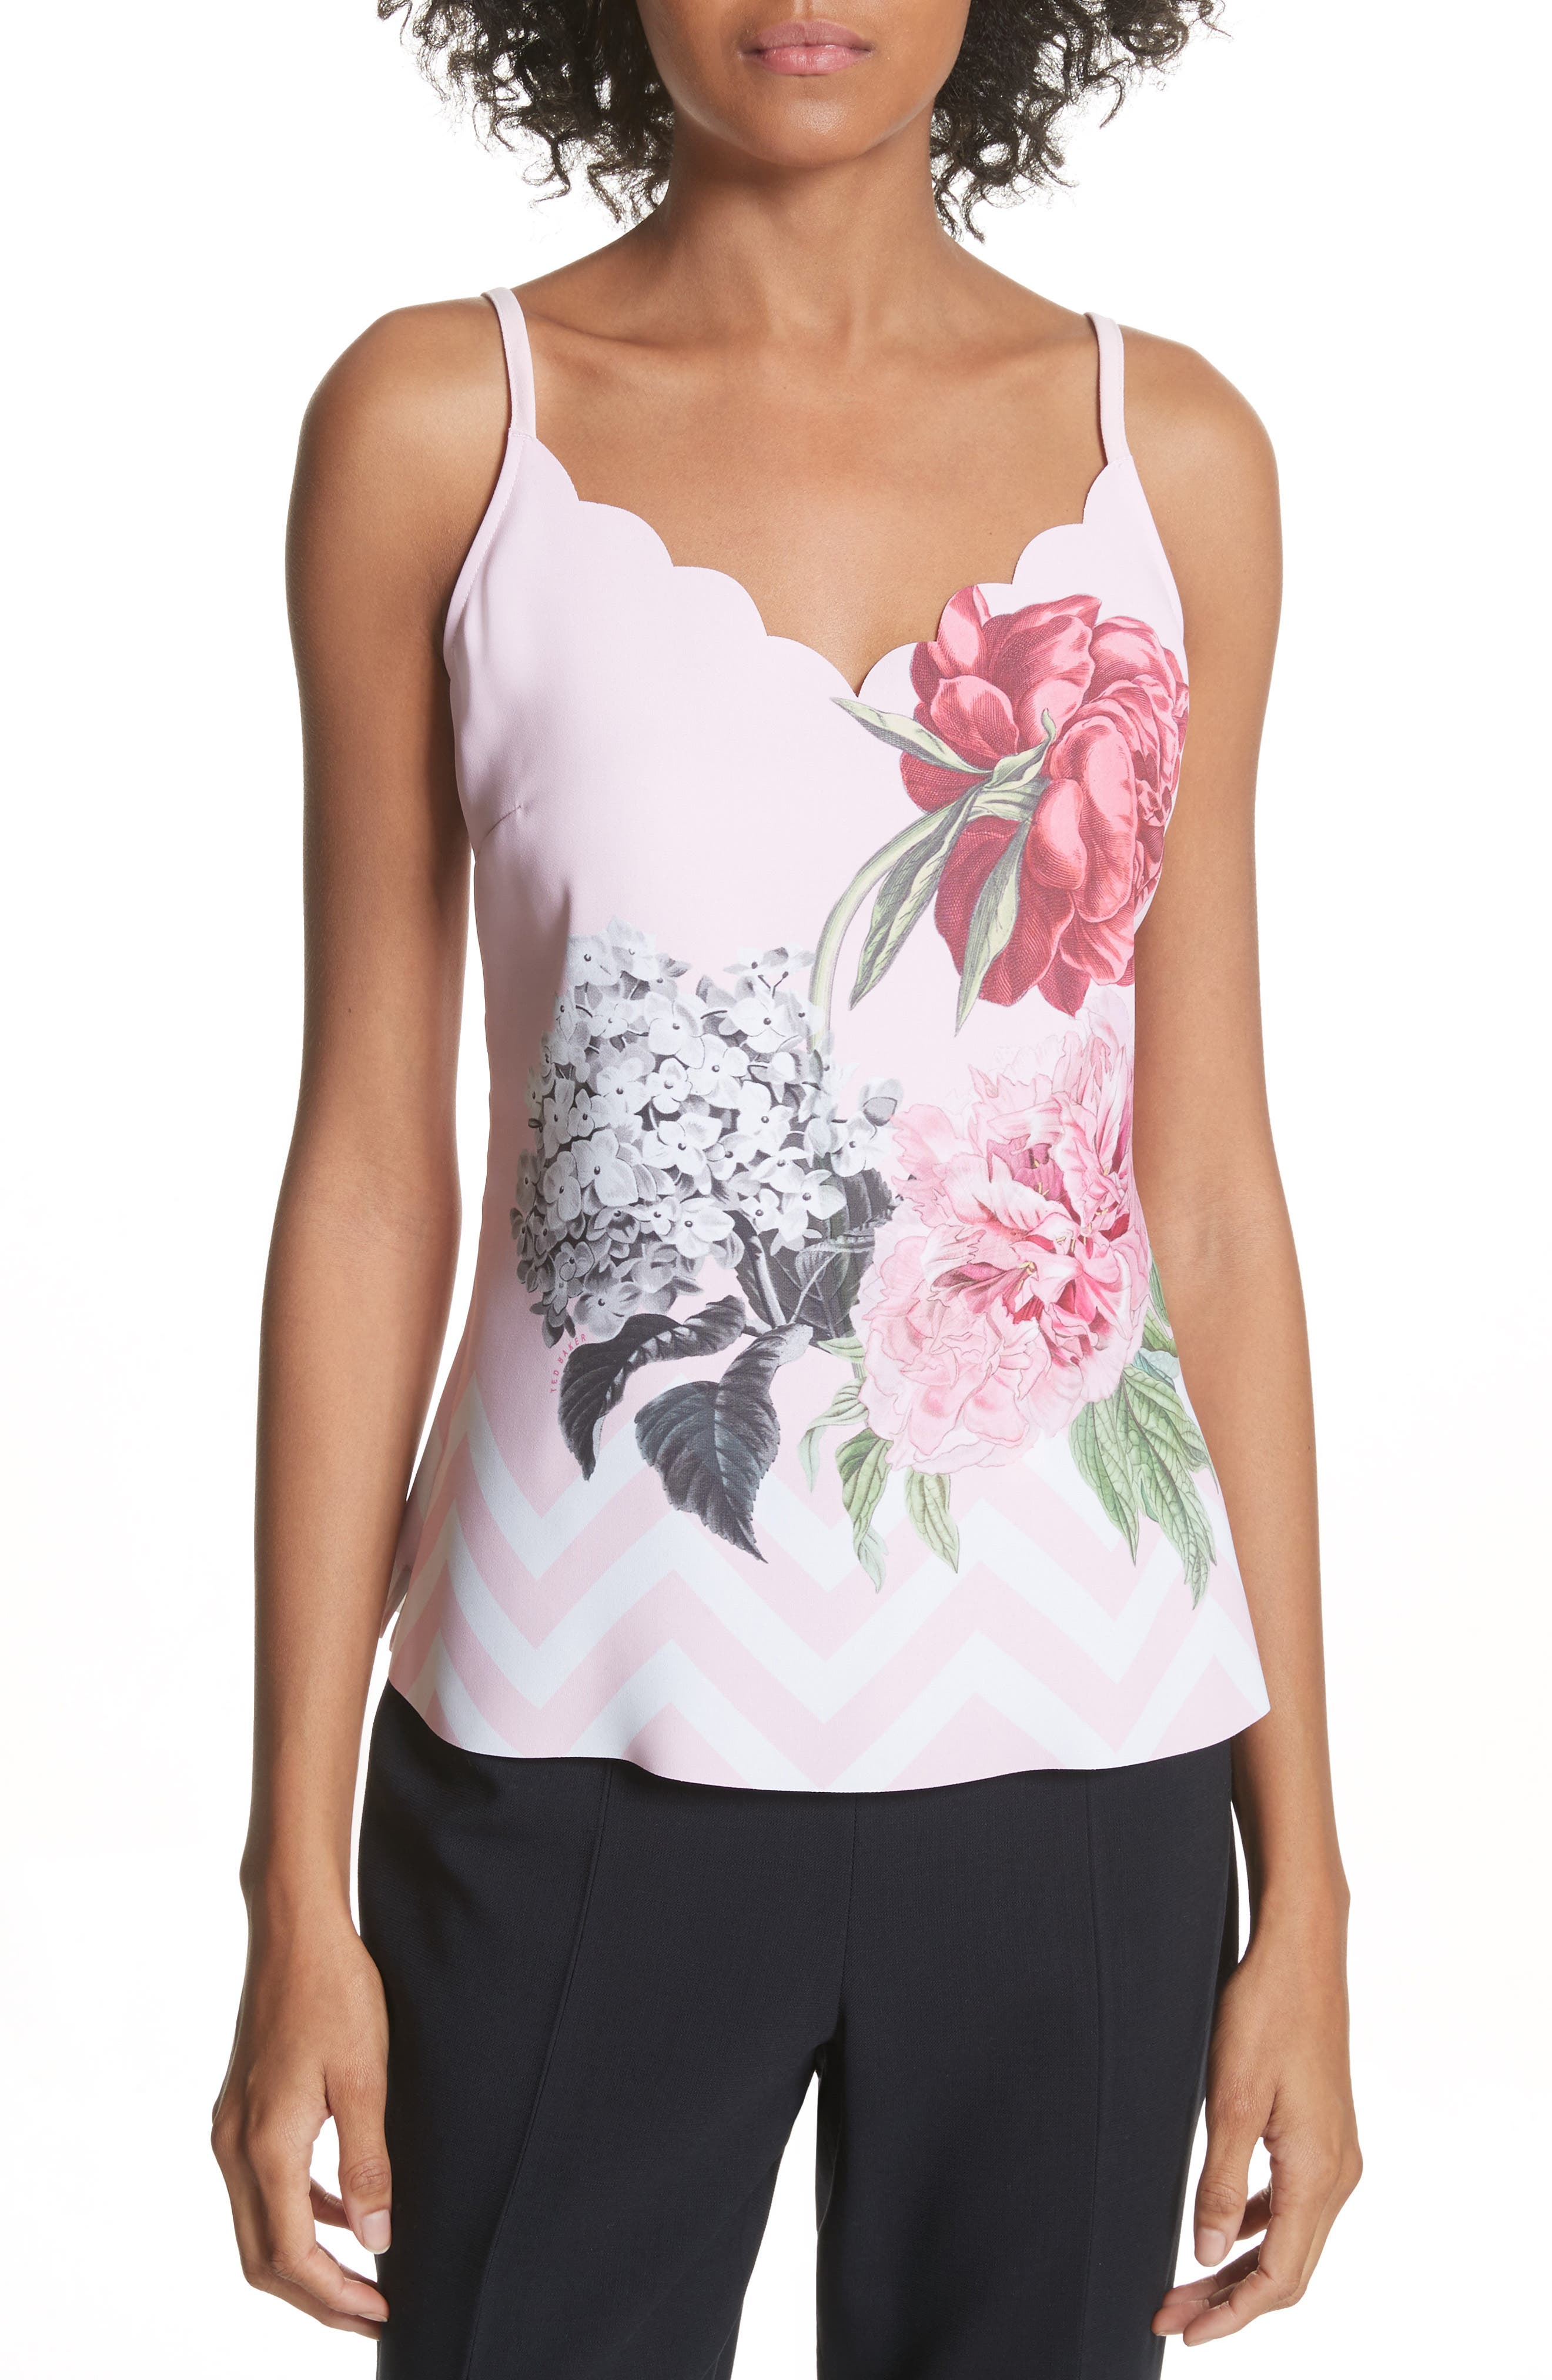 Palace Gardens Scalloped Camisole,                             Main thumbnail 1, color,                             Pale Pink